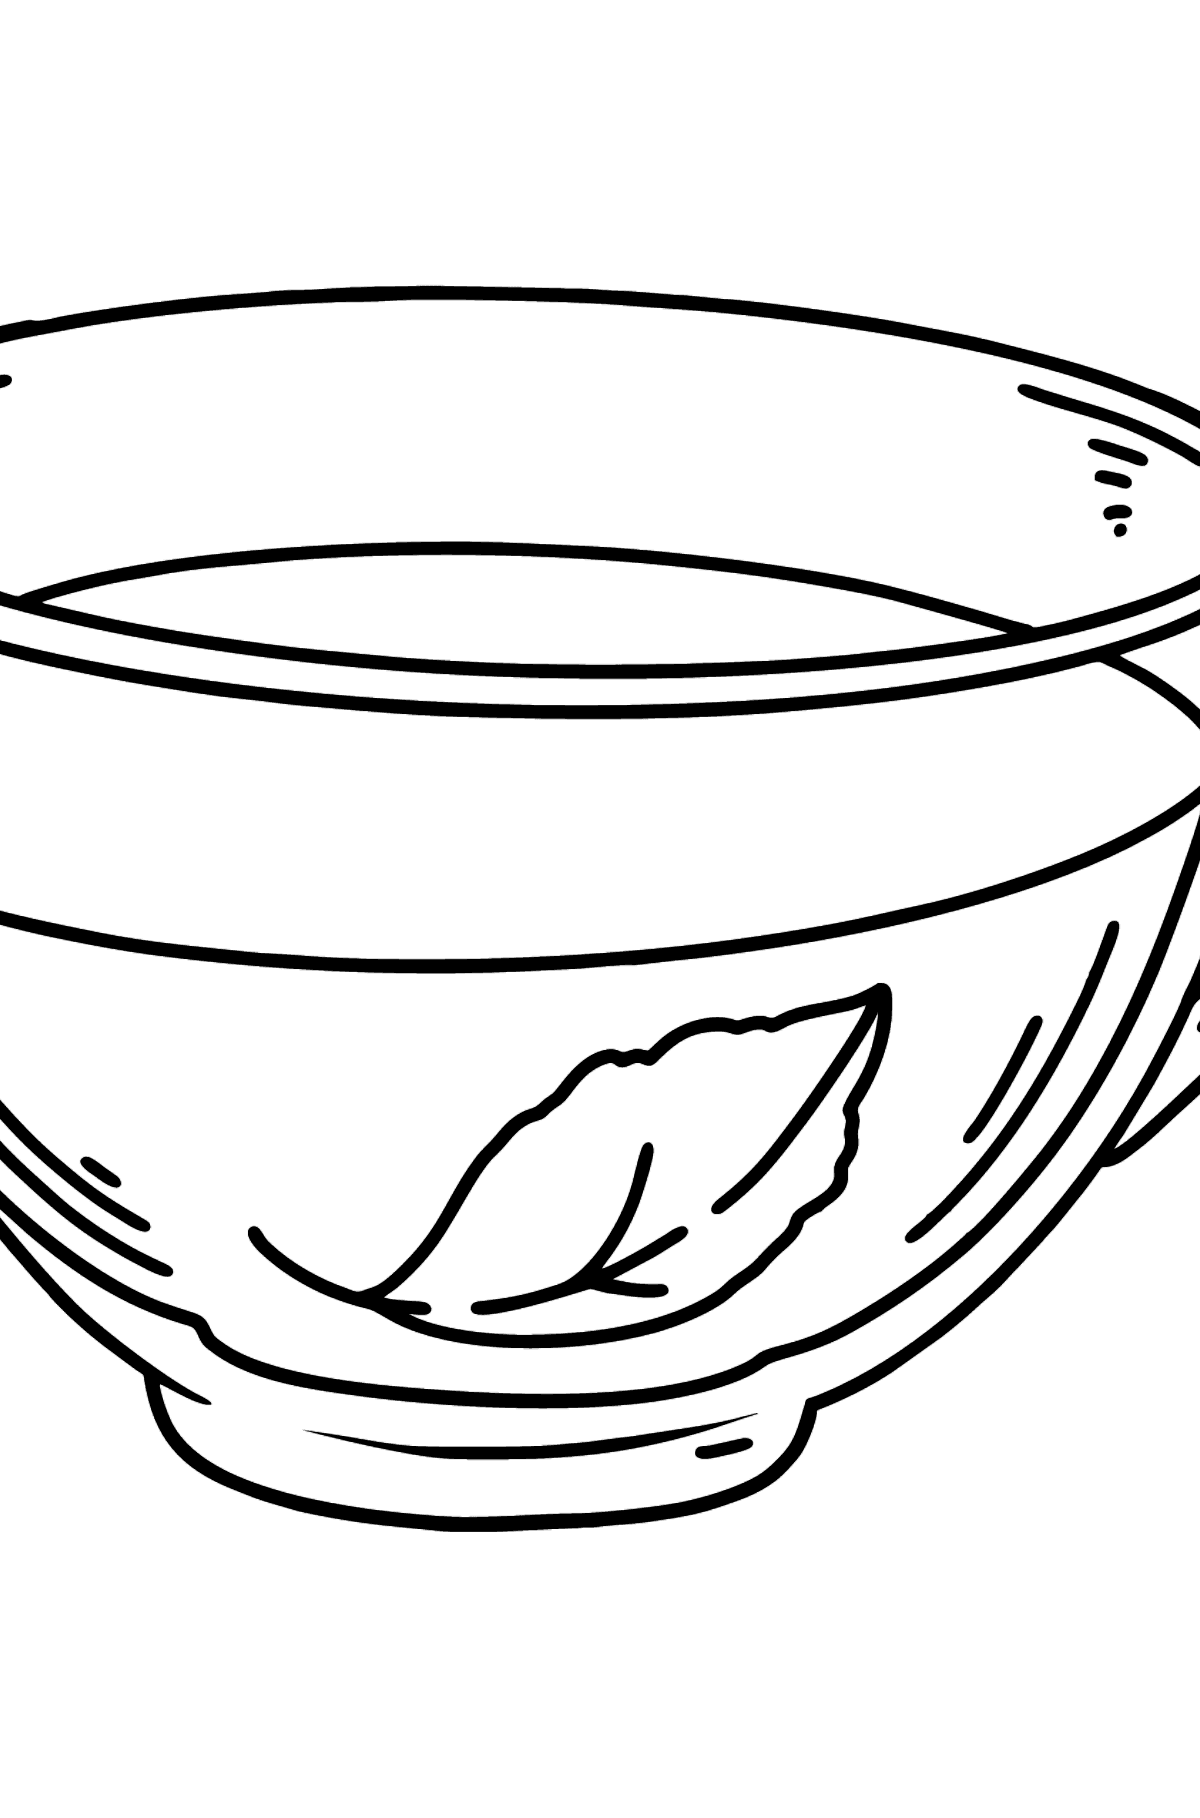 Green Tea coloring page - Coloring Pages for Kids